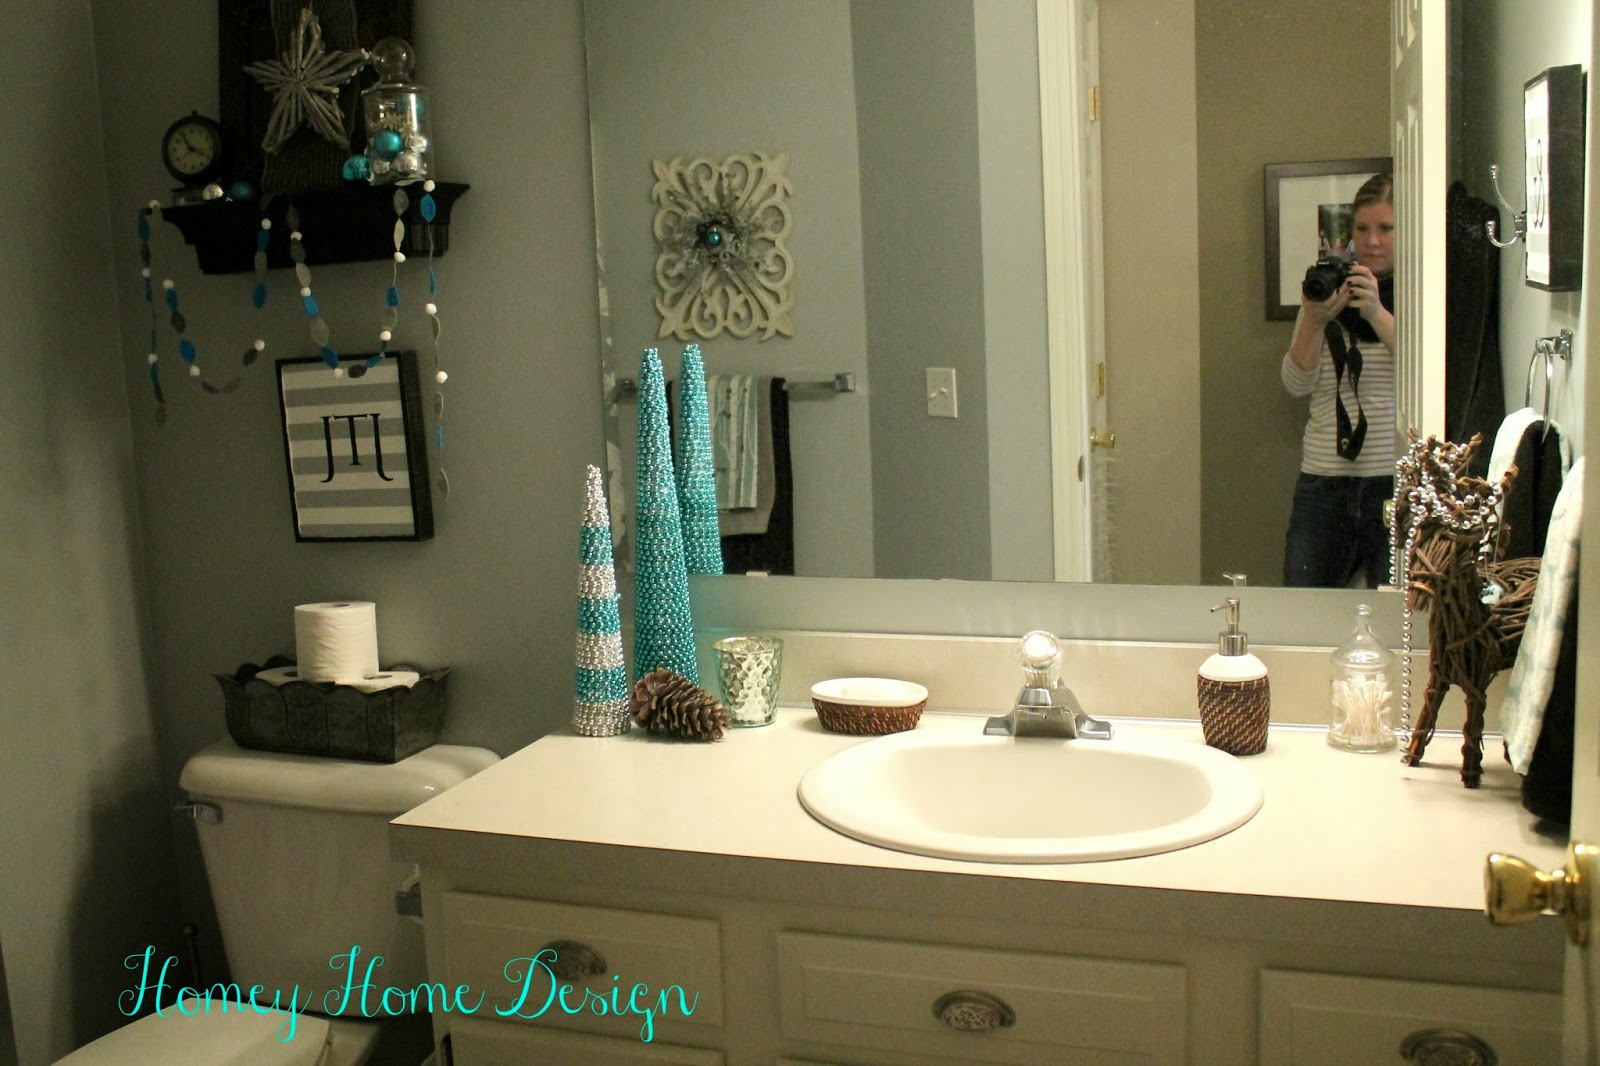 Homey home design bathroom christmas ideas for Pics of bathroom decor